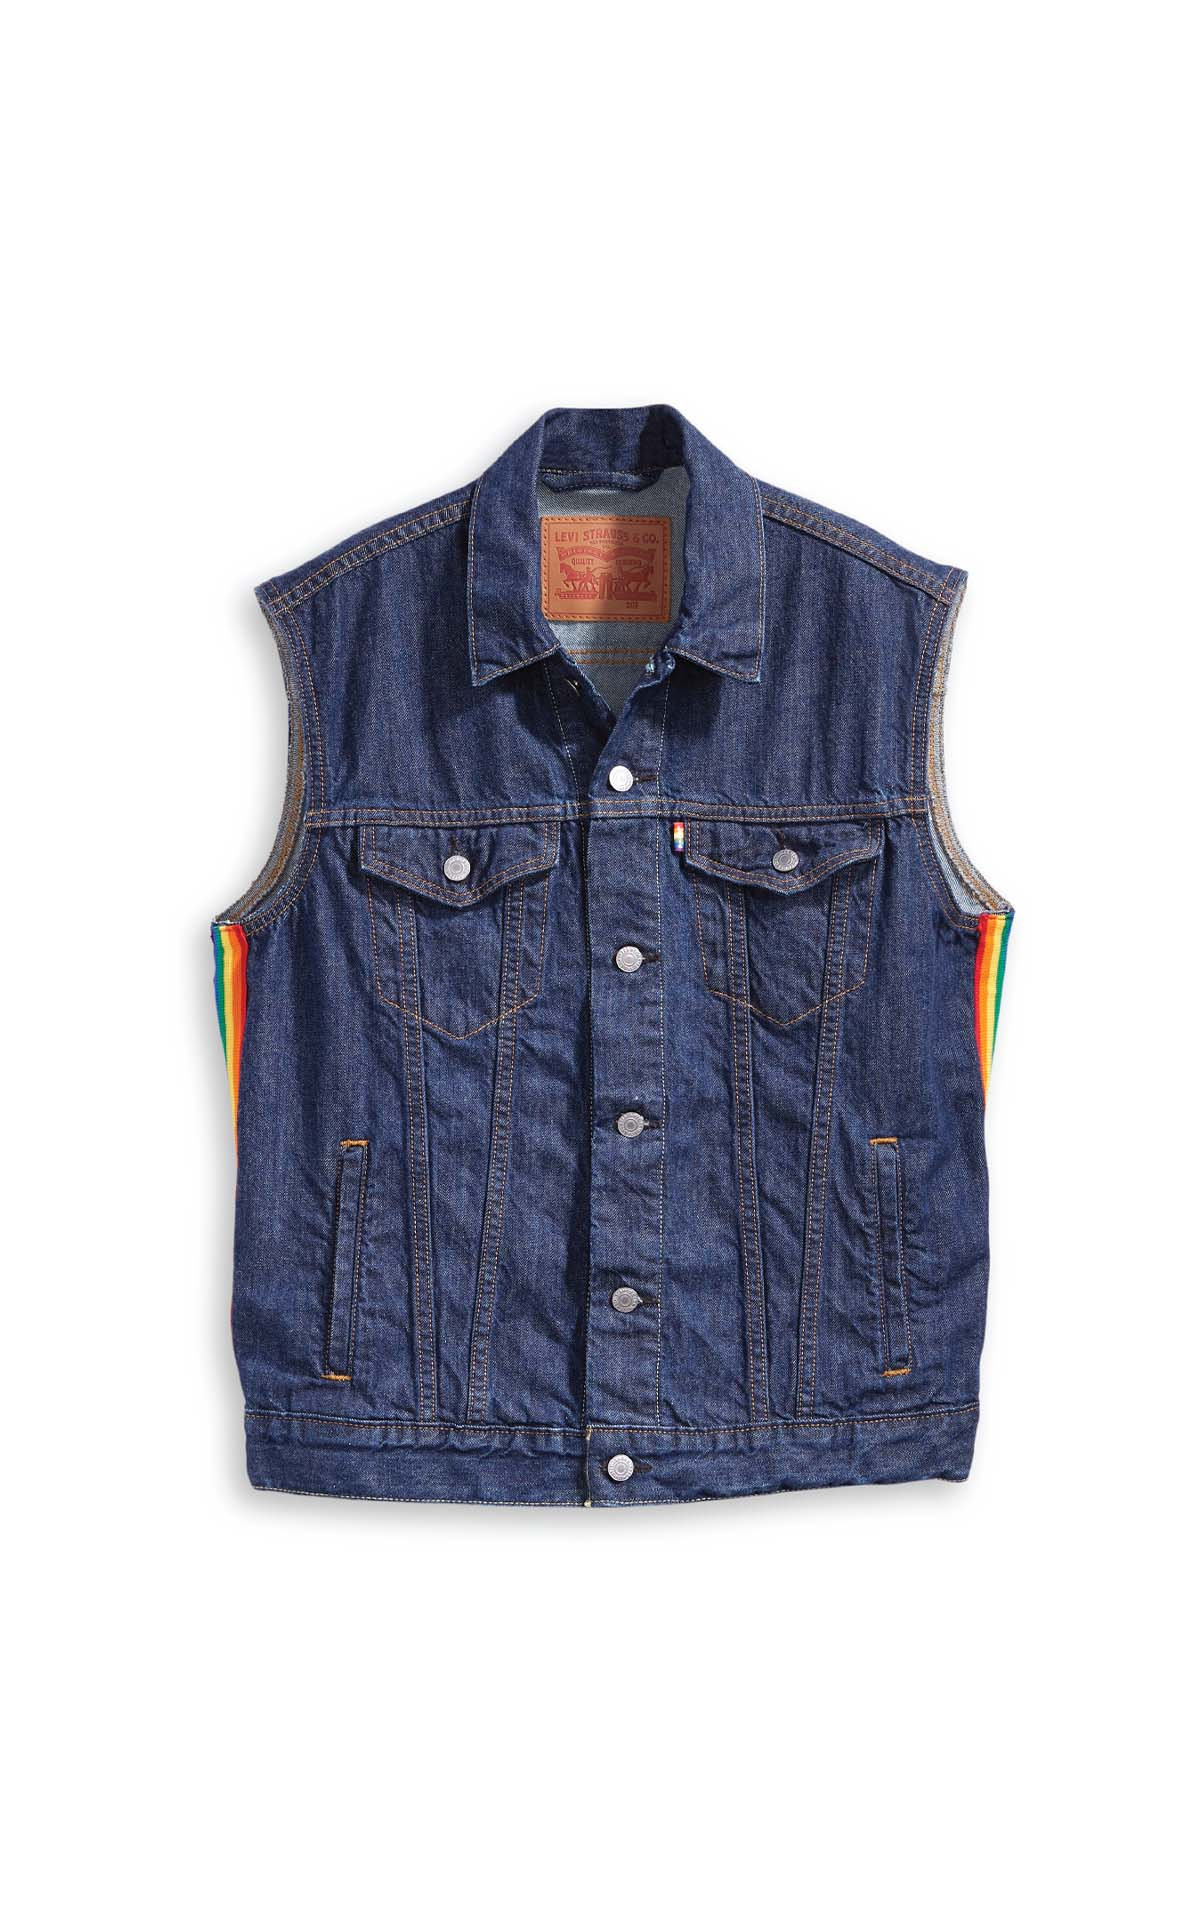 Levi's pride trucker vest at The Bicester Village Shopping Collection